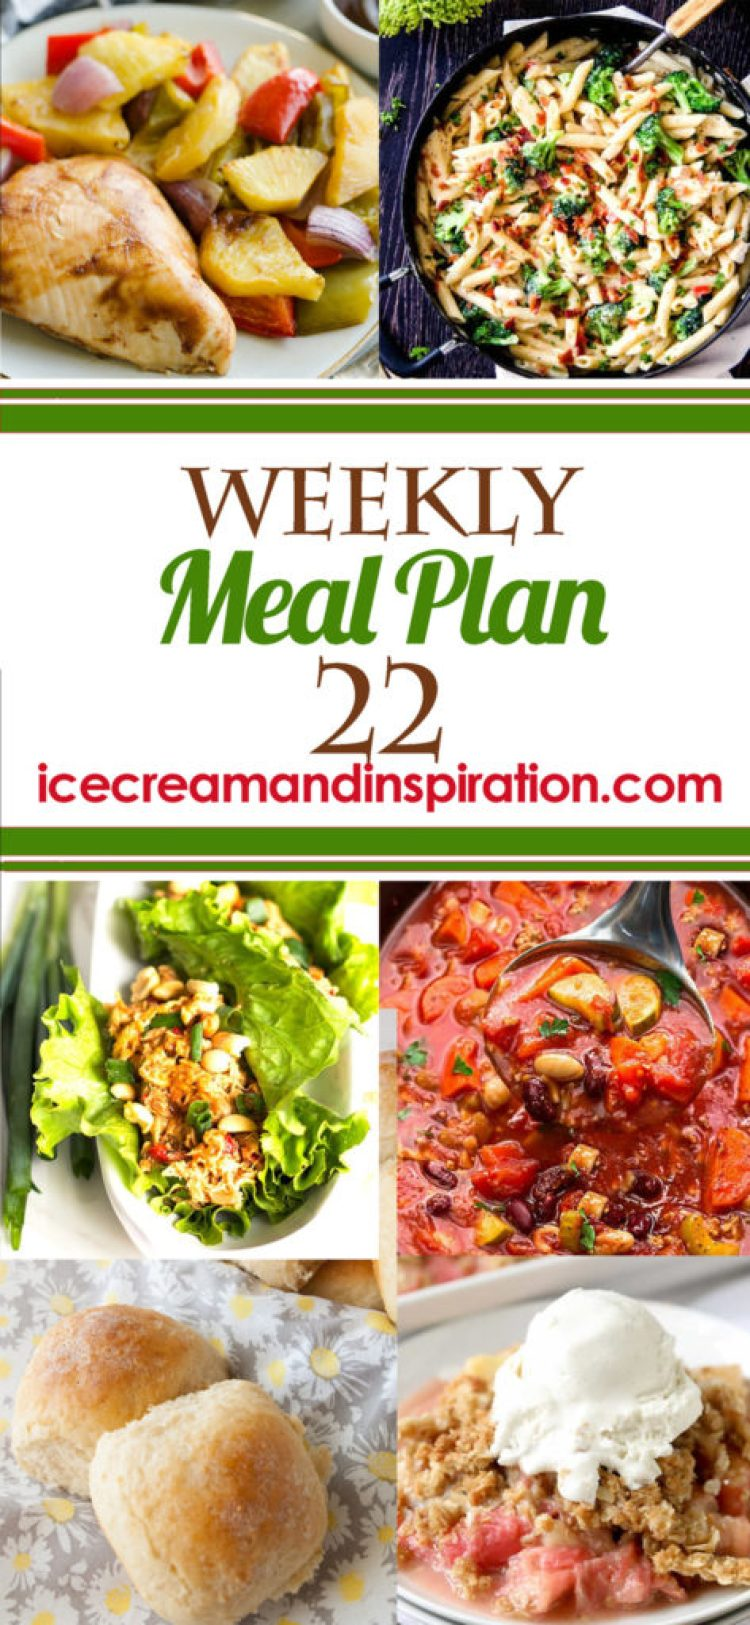 This week's meal plan has recipes for Hawaiian Barbecue Sheet Pan Dinner, Easy Skillet Beef Pot Pie, Grilled Ranch Pork Chops, and more! Plus, recipes for bread and dessert.